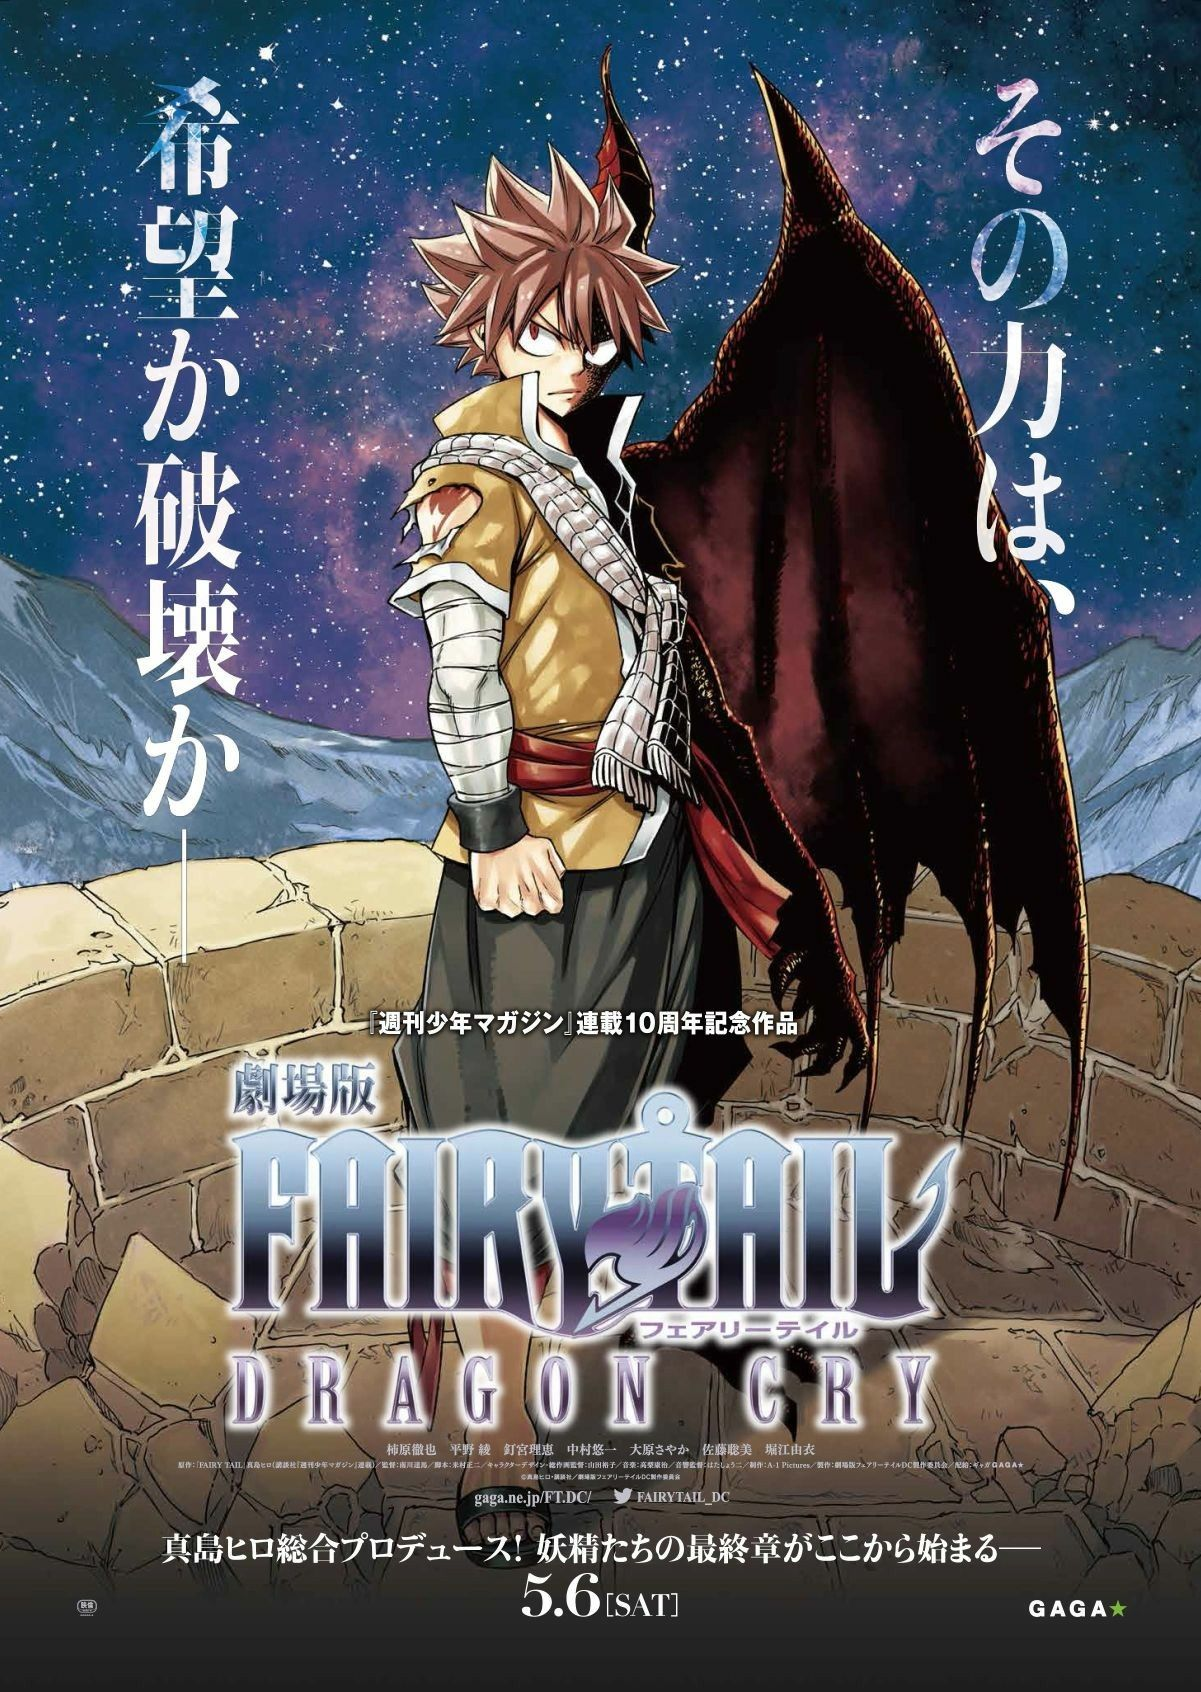 Natsu Dragneel Fairy Tail Dragon Cry Text Movie Poster Cool Dragon Slayer Form Fairy Tail Fairy Tail Movie Anime Films Watch Fairy Tail